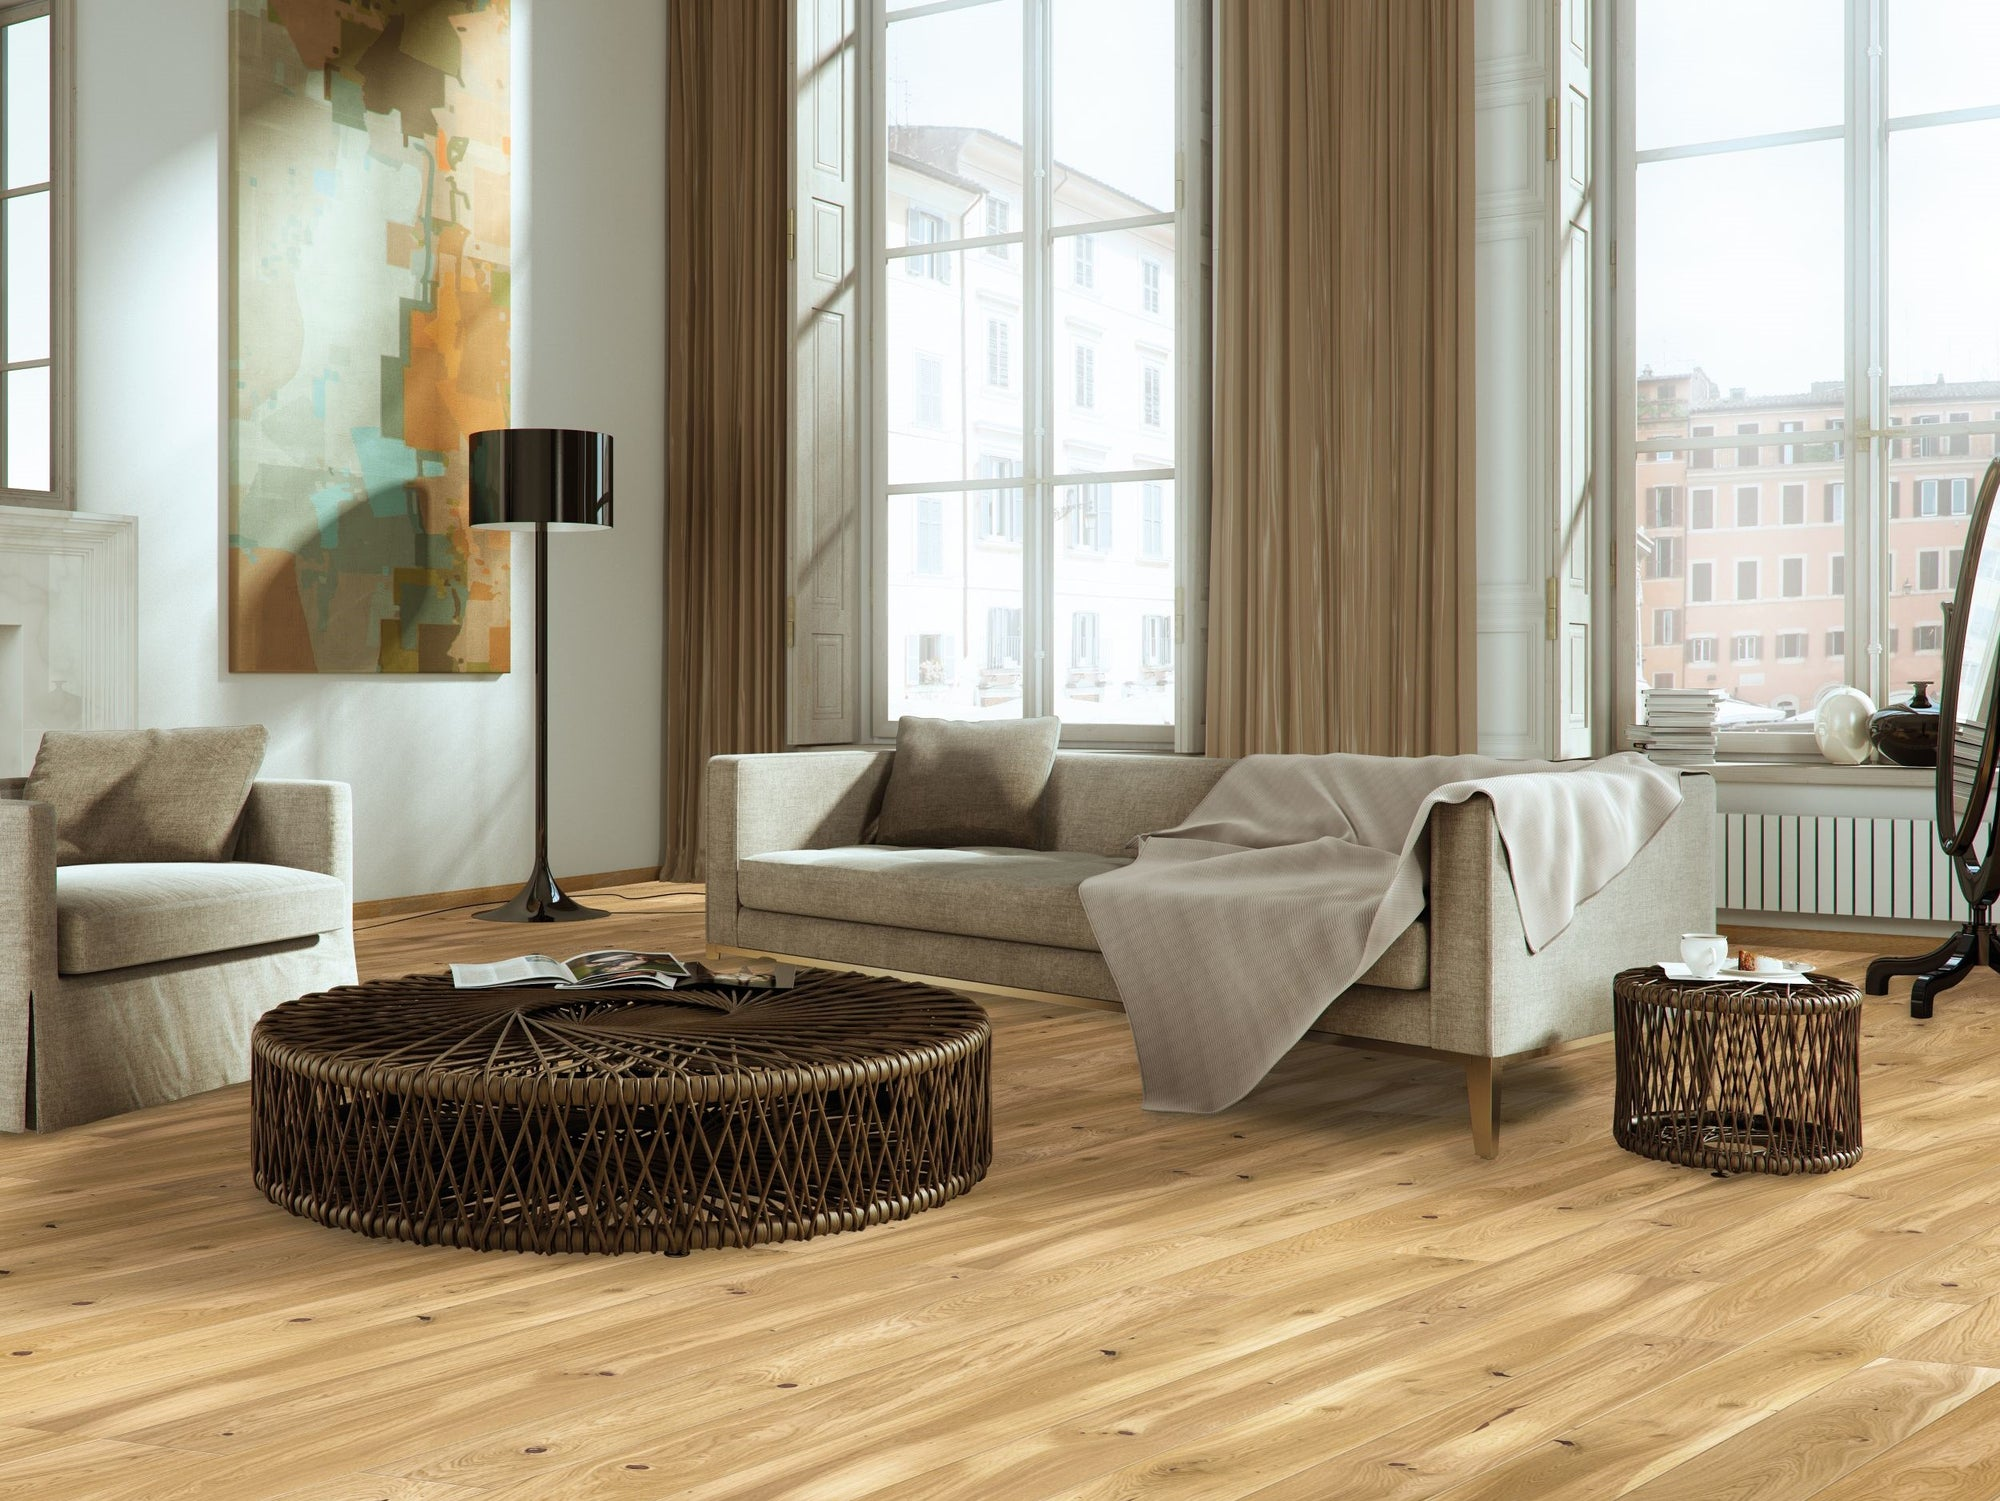 Find Out What Is the Cost Of Hardwood Floors